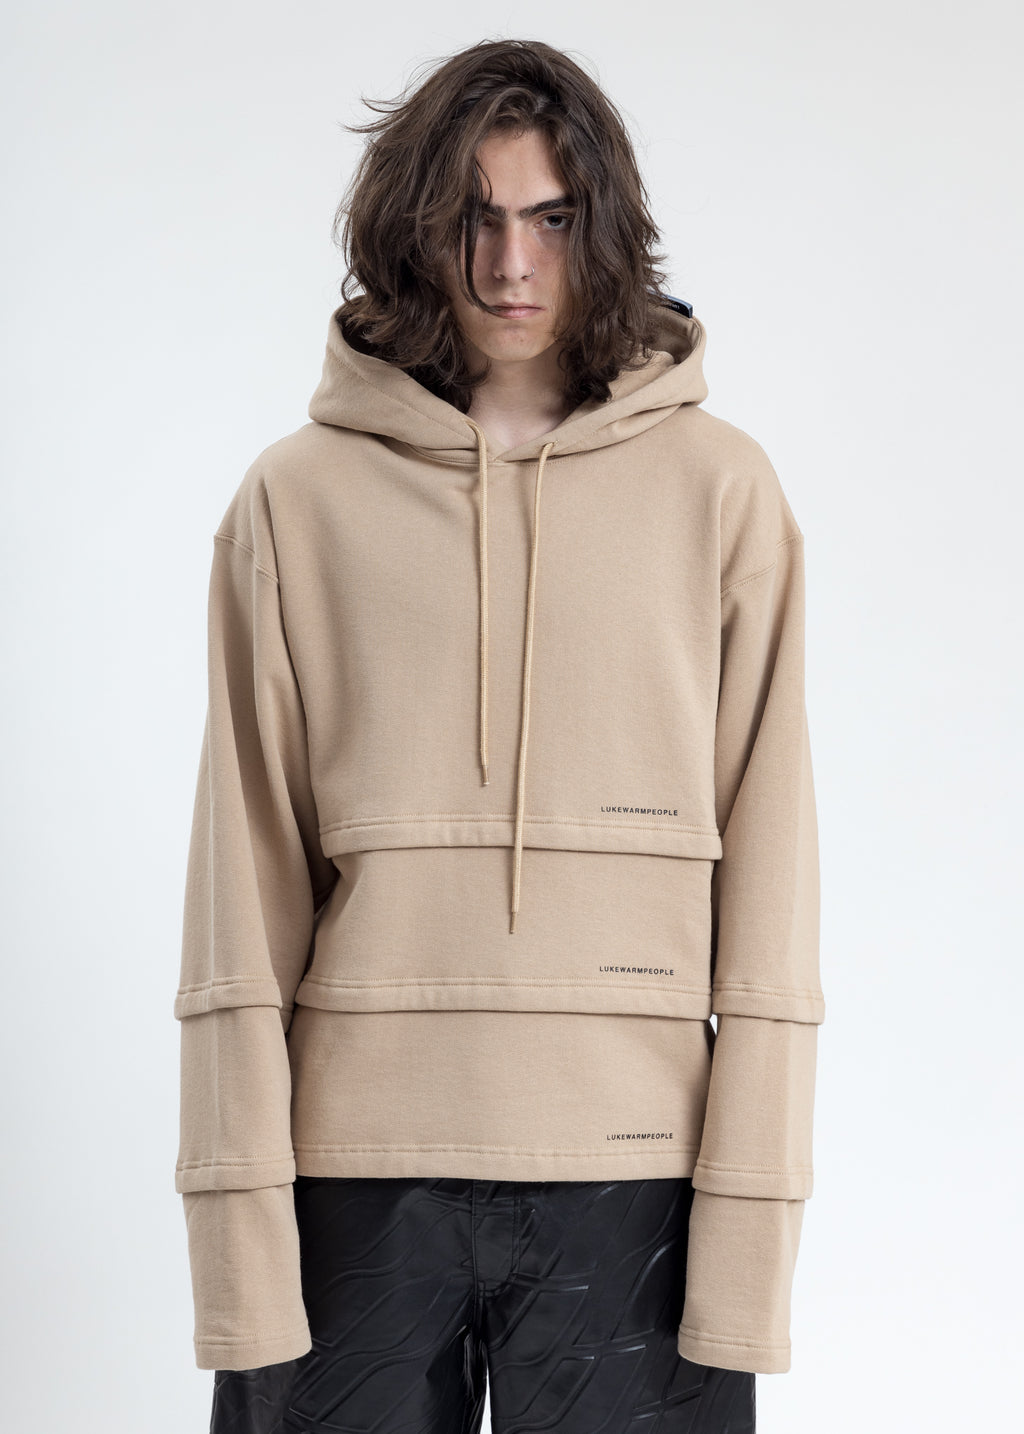 Khaki Triple Layer Hoodies